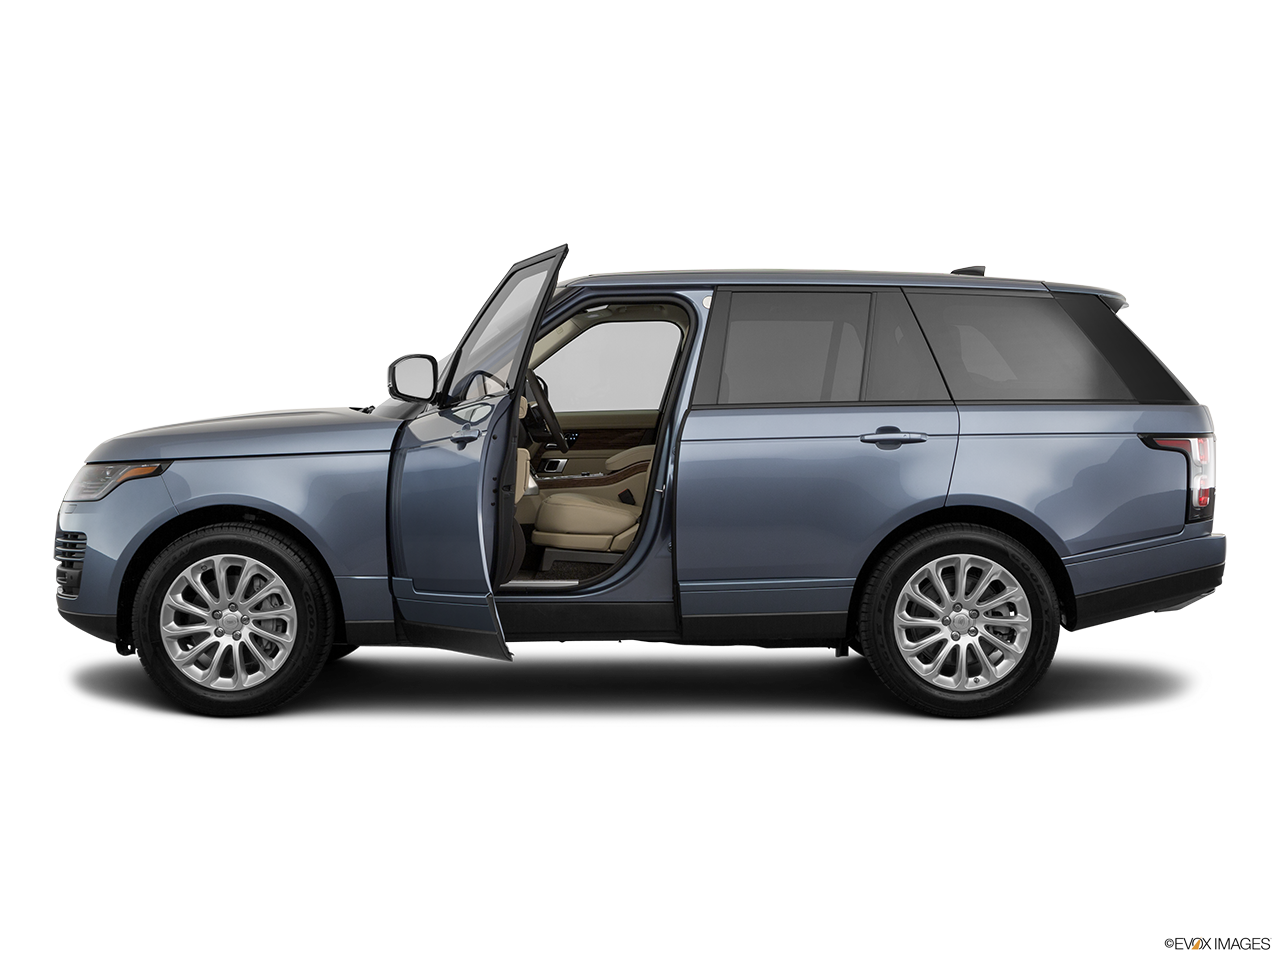 Side view of the Land Rover Range Rover PHEV